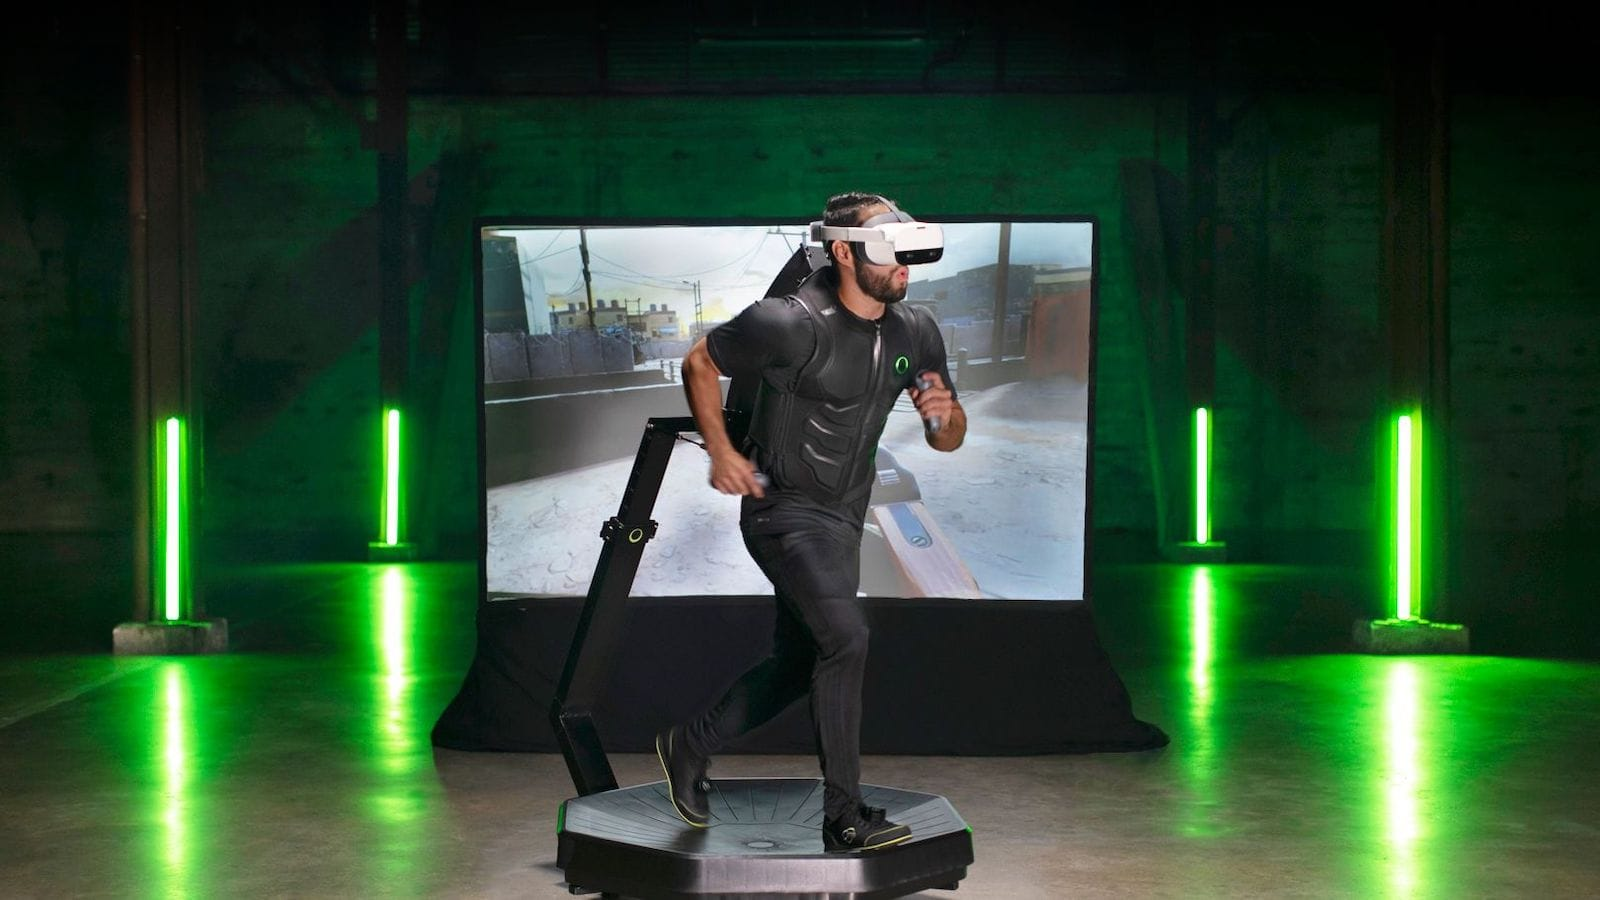 Virtuix Omni One VR treadmill lets you move in all 360 degrees